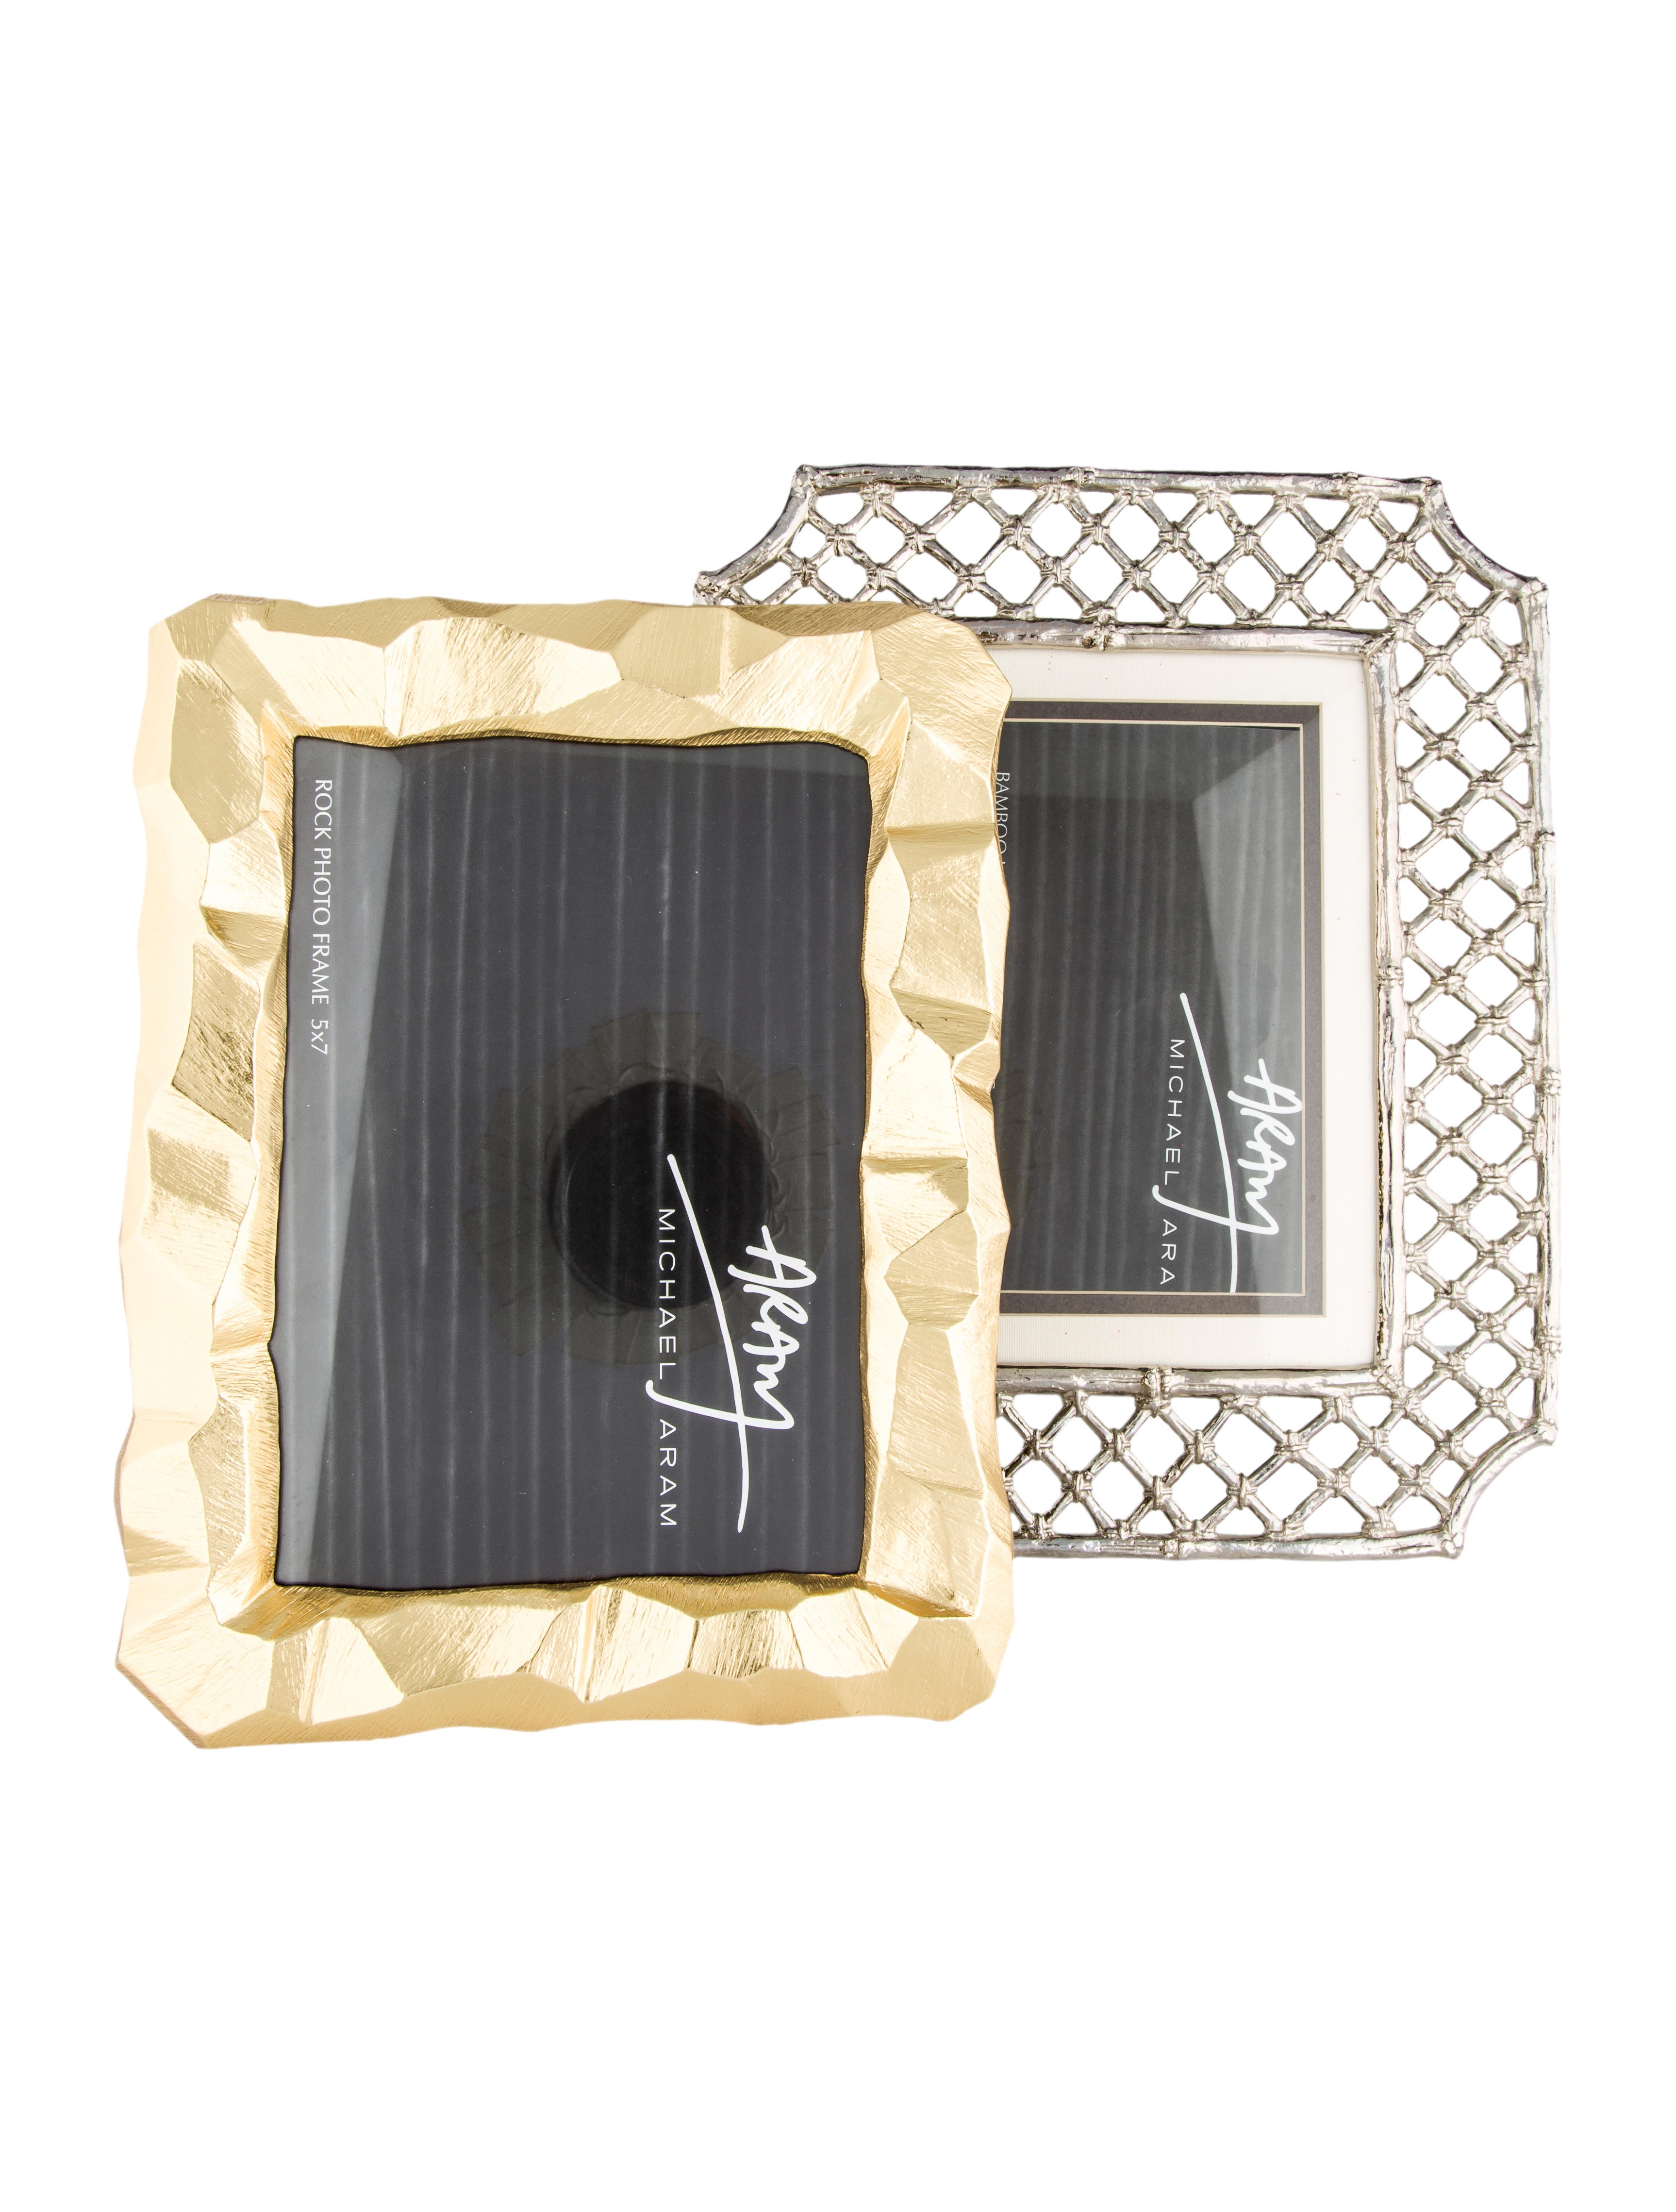 Michael Aram Picture Frames - Decor And Accessories - MCA20632   The ...